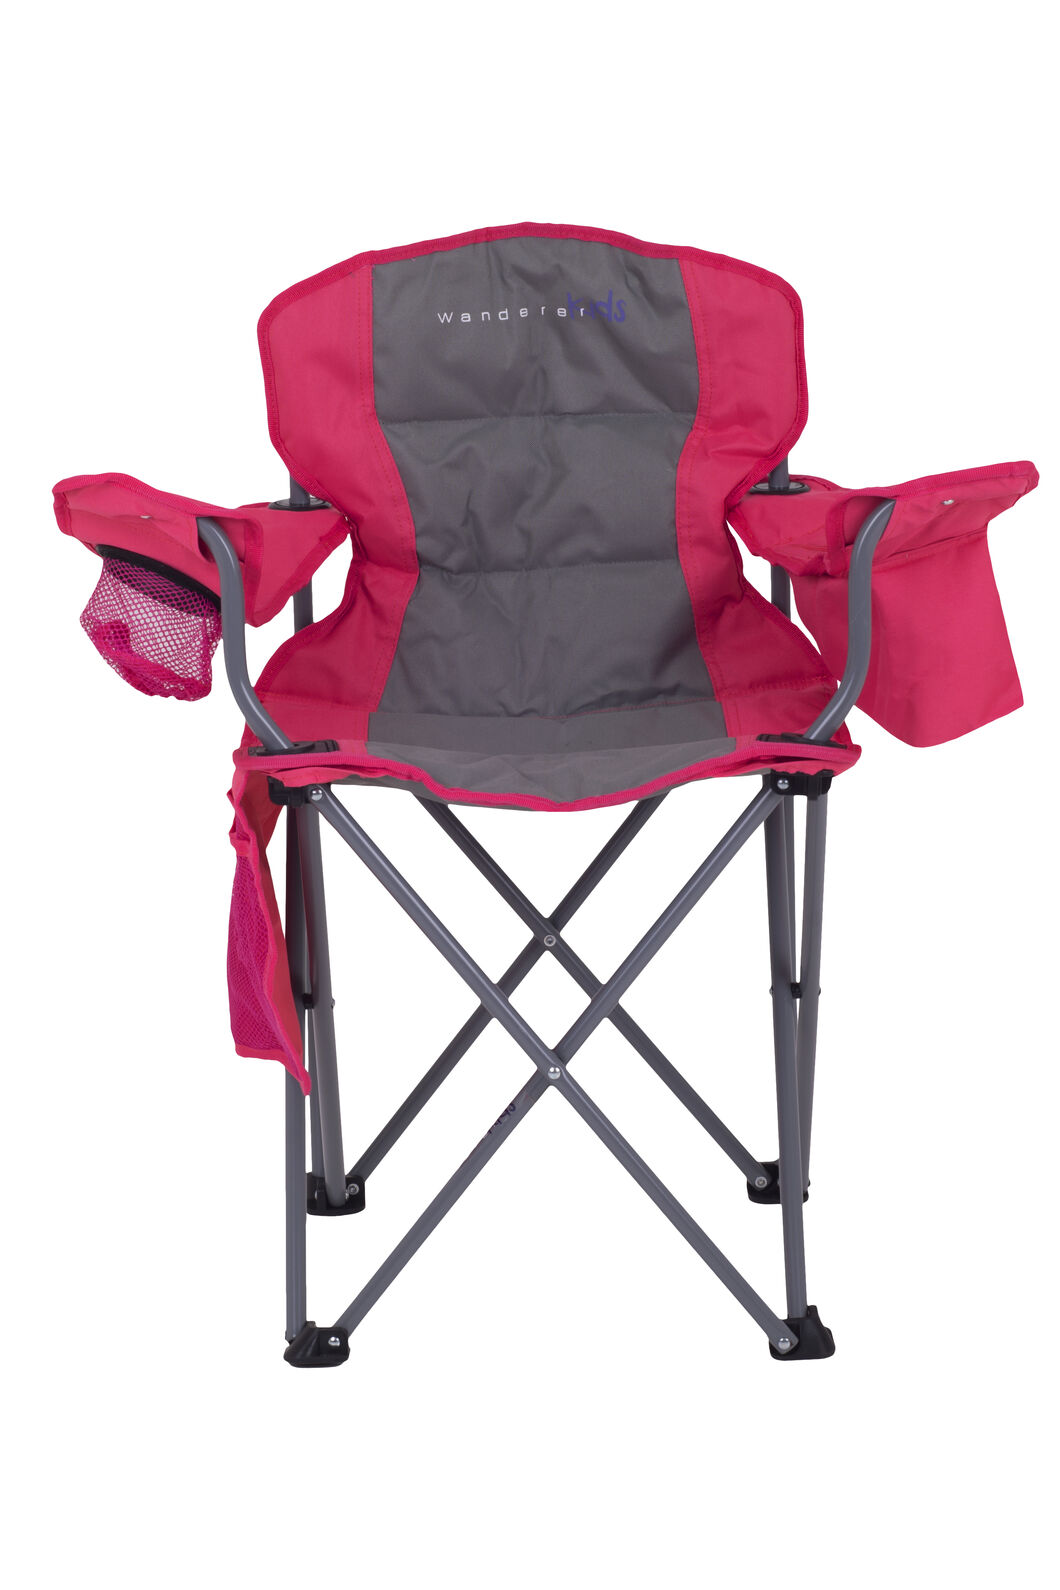 Wanderer Kids' Cooler Arm Chair, Pink, hi-res